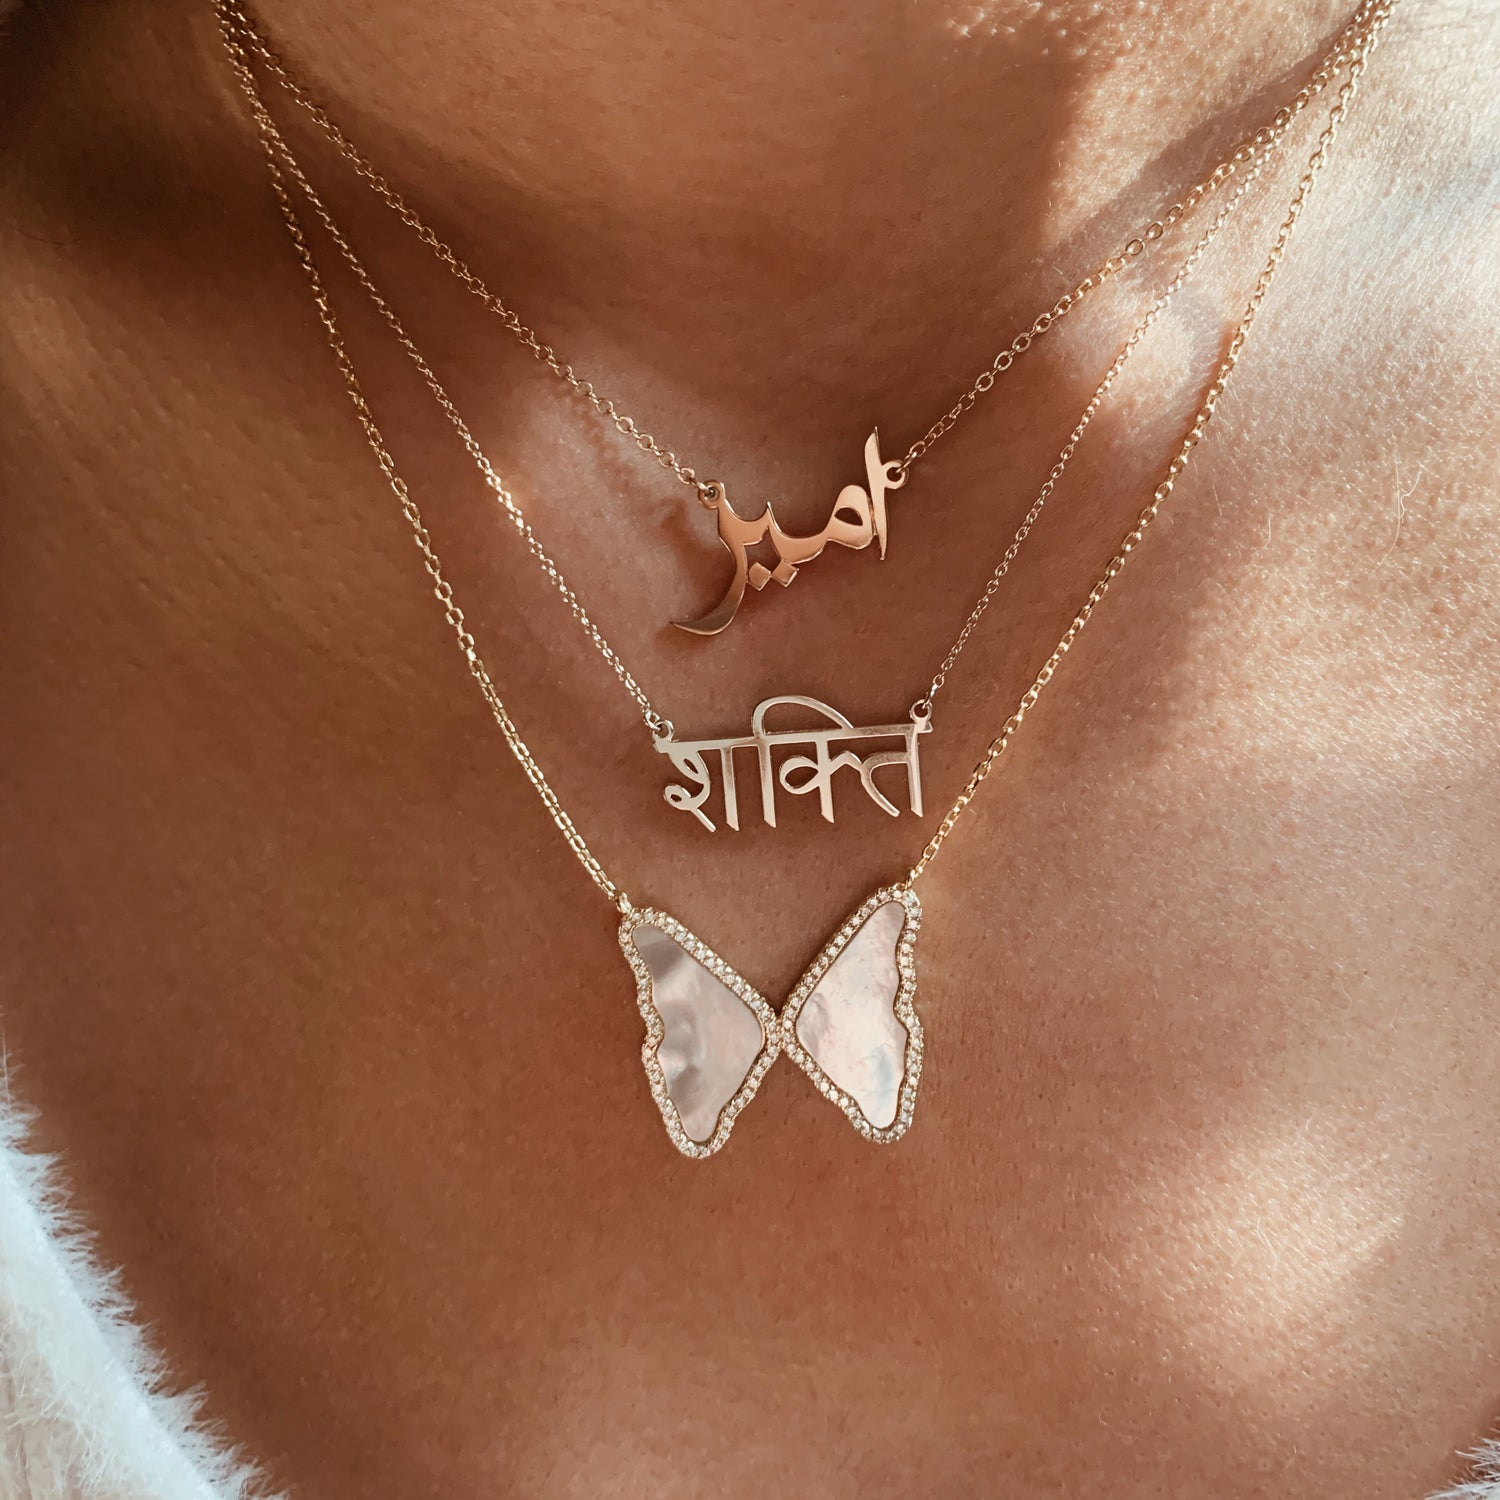 Custom Sanskrit Calligraphy Necklace